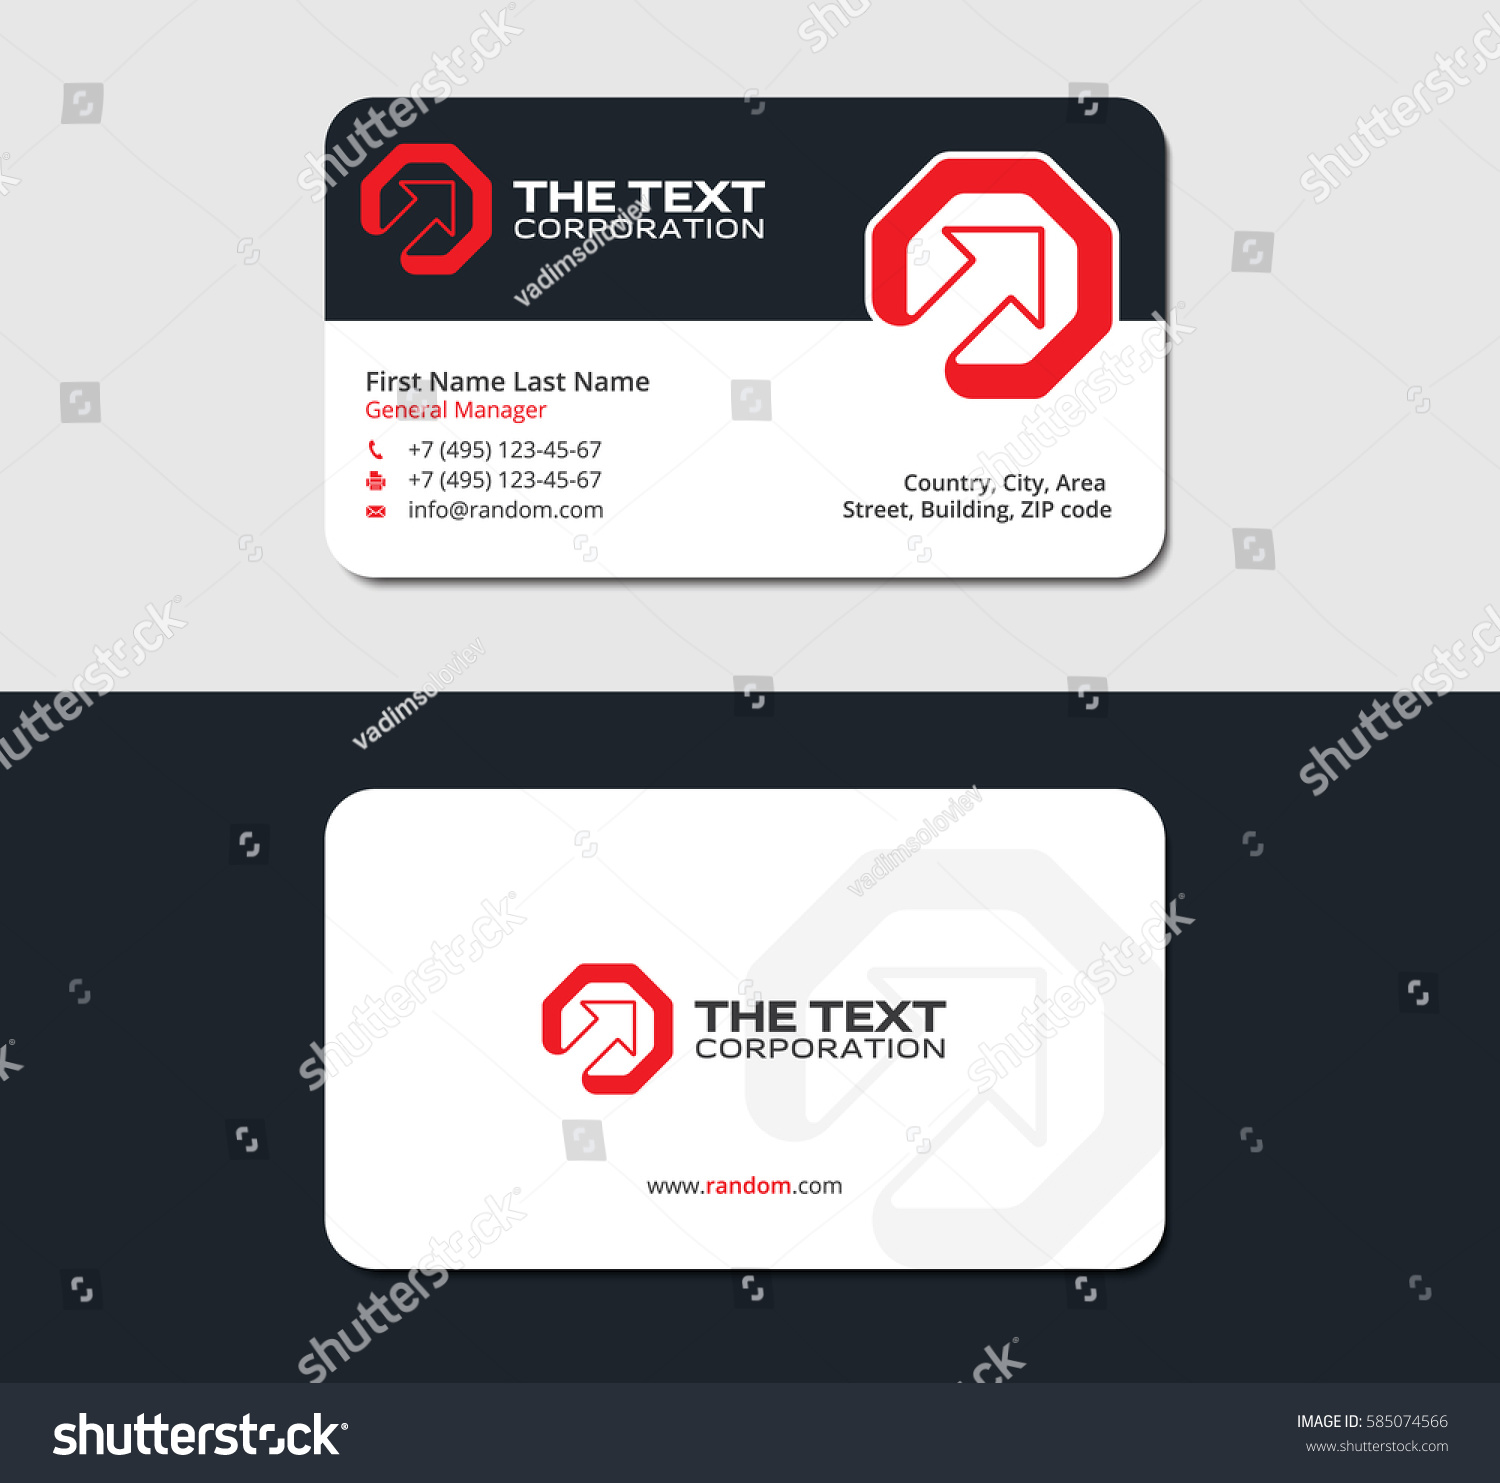 Startup Business Card Design Template Red Stock Vector HD (Royalty ...